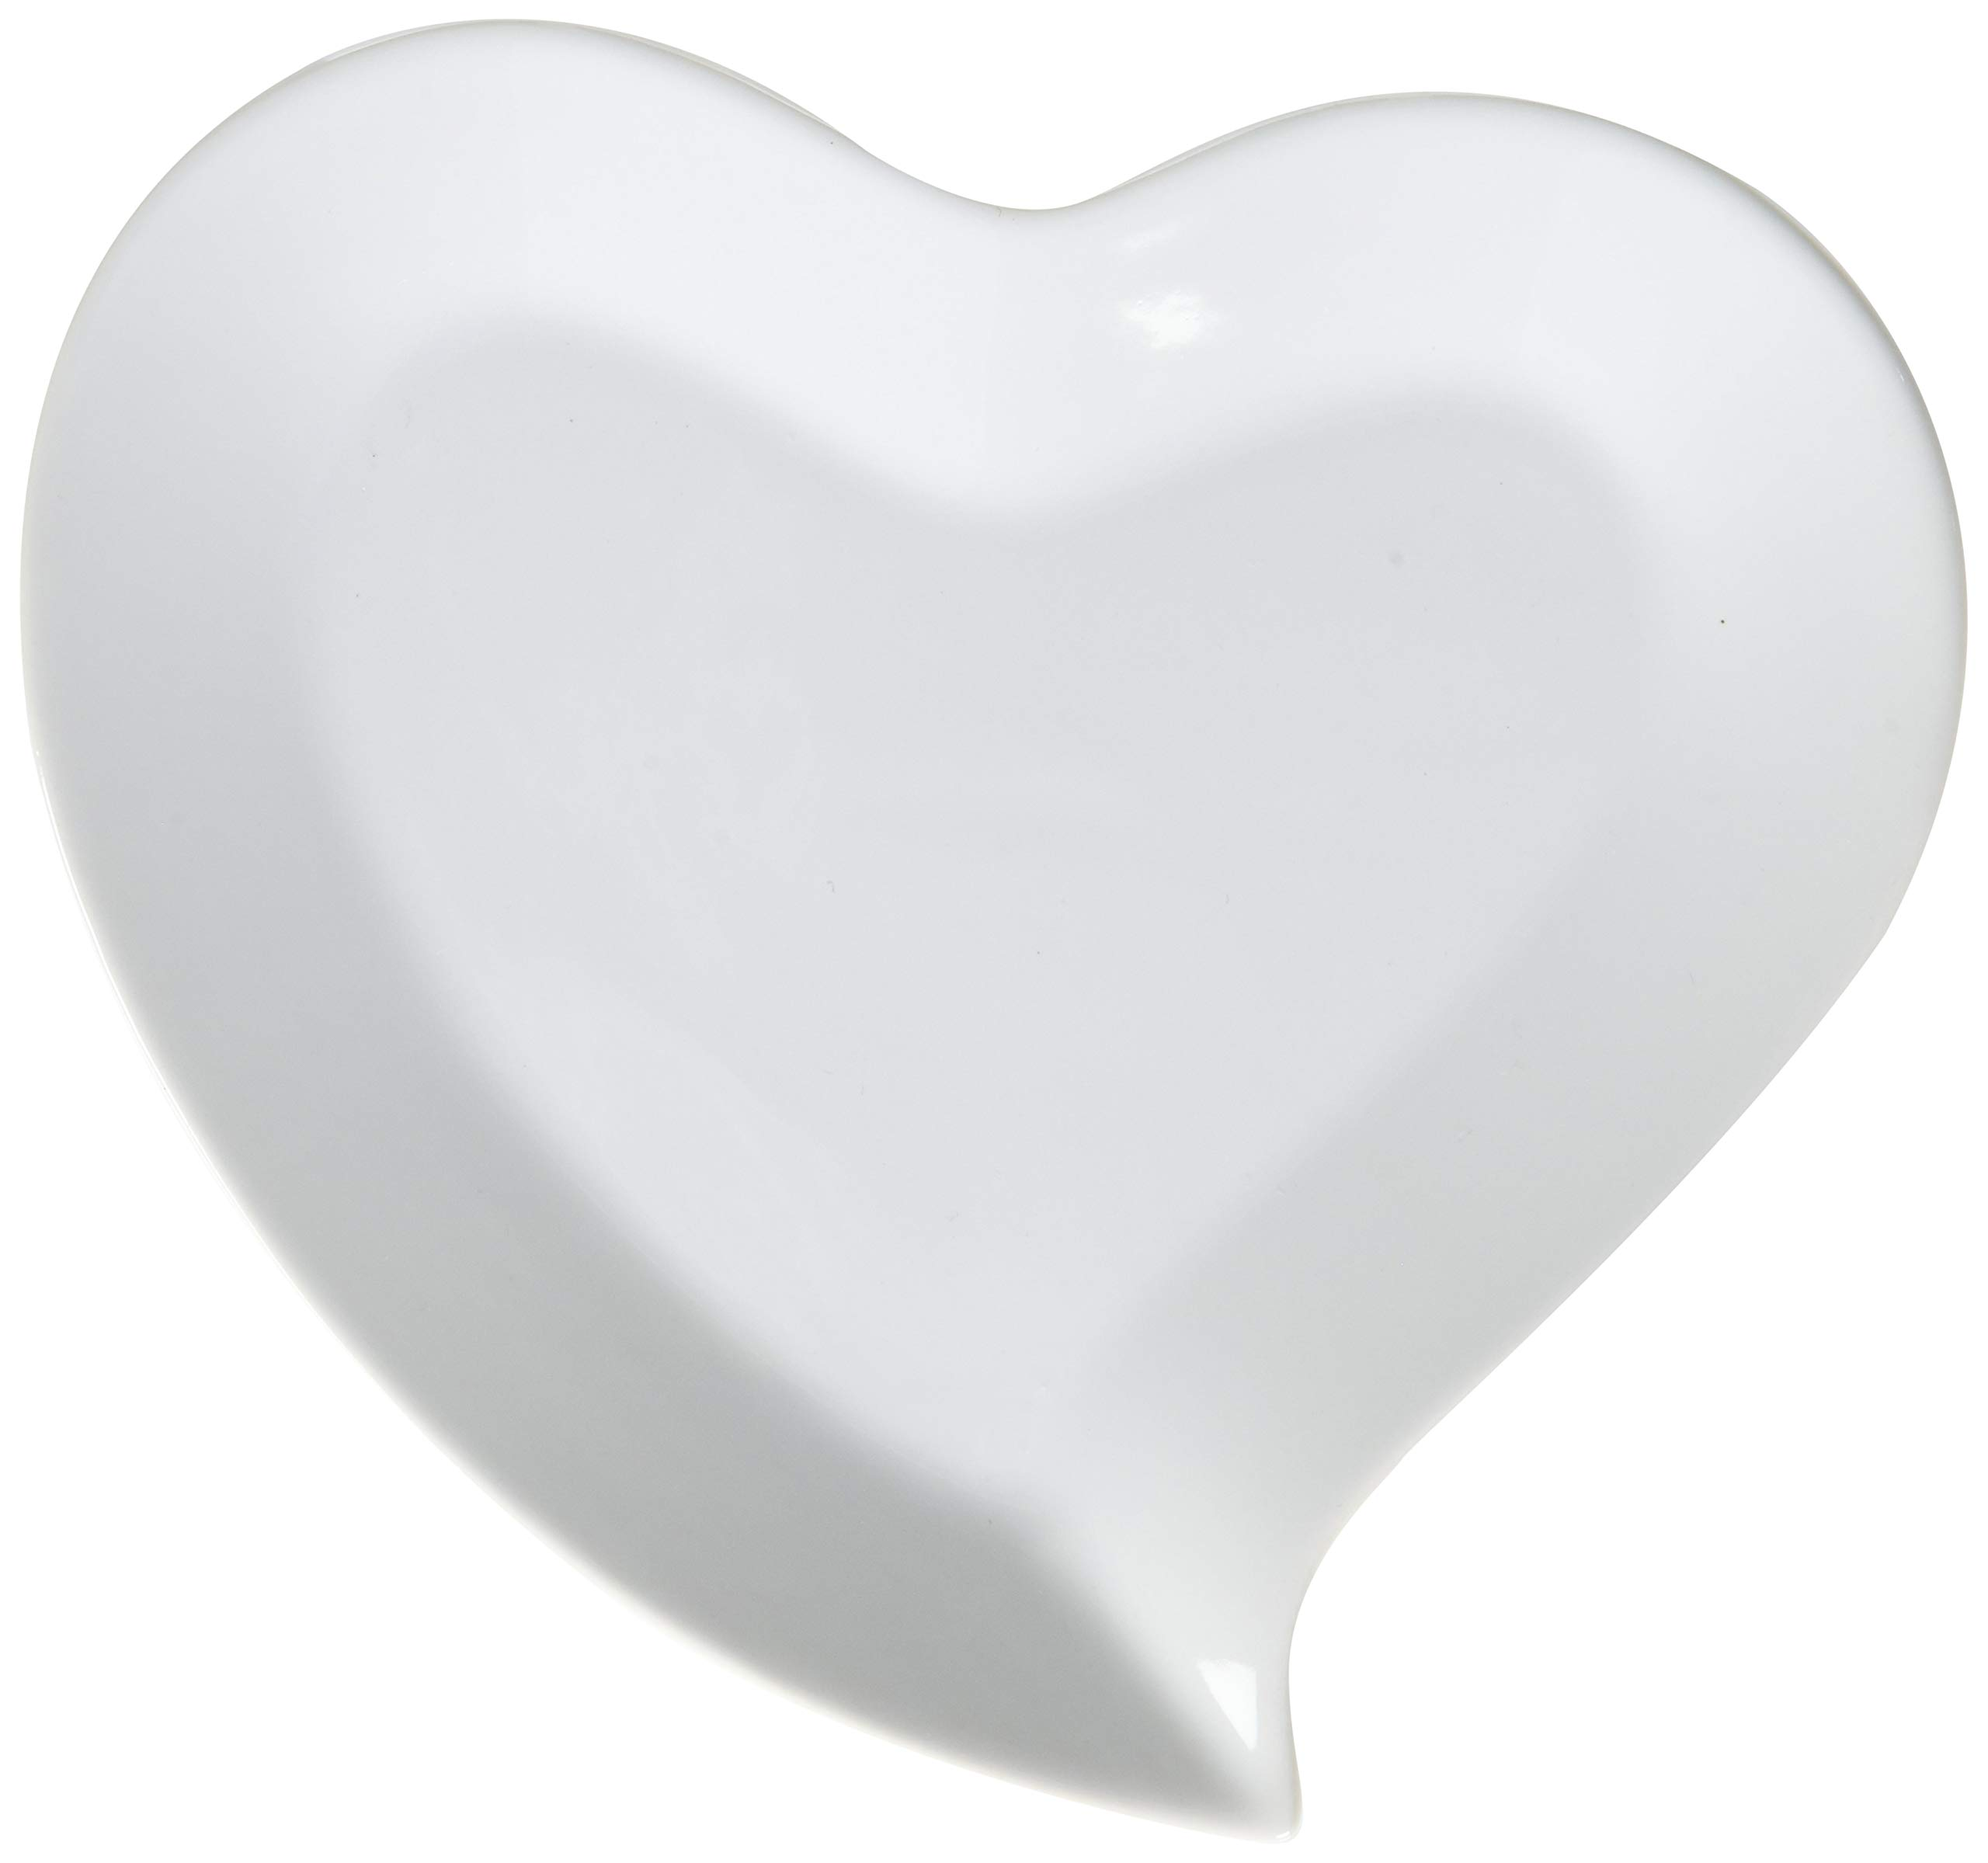 Heart Shaped Plates, package of 4